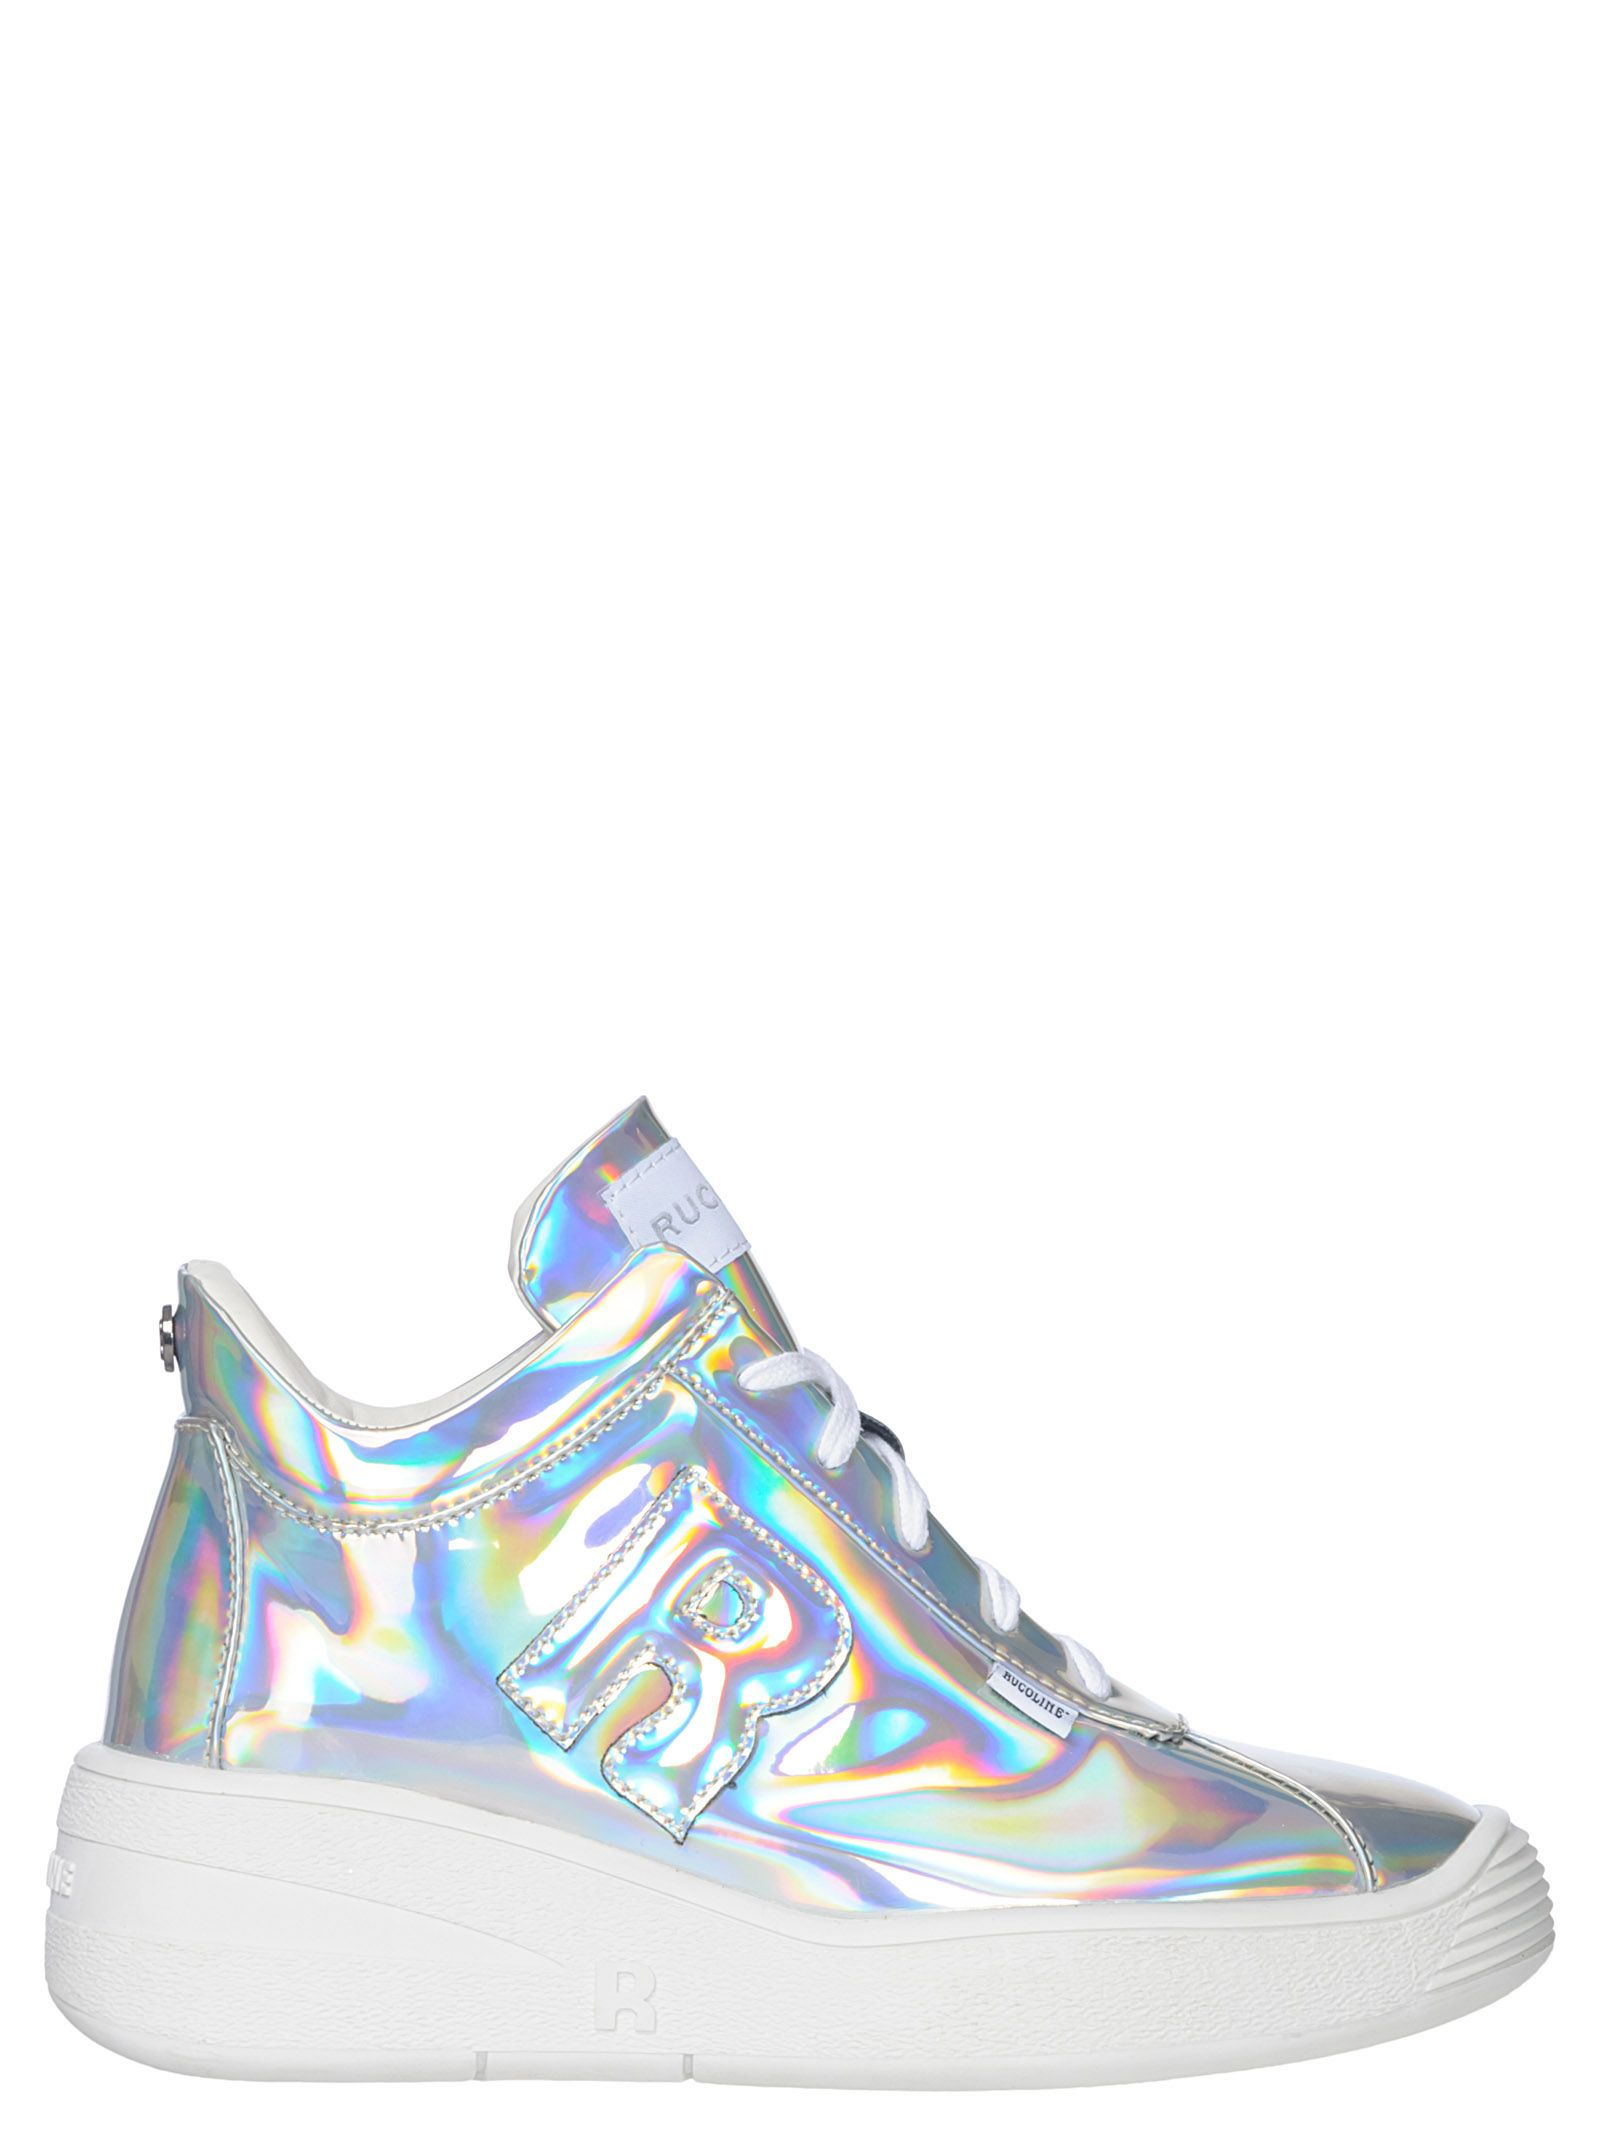 RUCOLINE Rucoline Sneakers Livingston in Silver